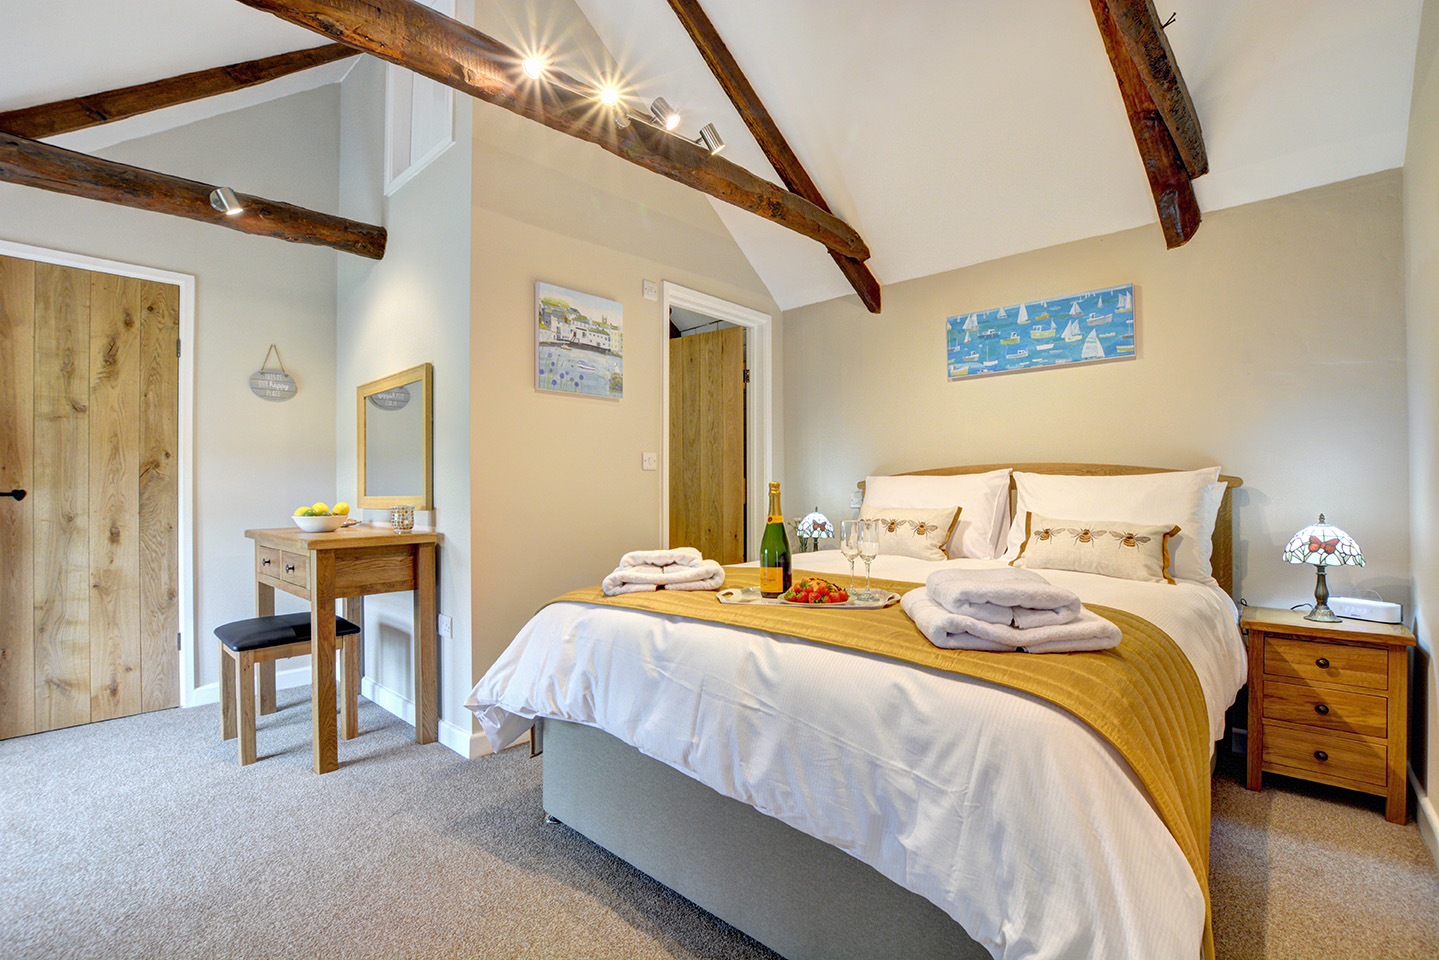 The bedroom of The Linney self catering cottage converted barn at Penrose Burden holiday cottages in Cornwall 01.jpg